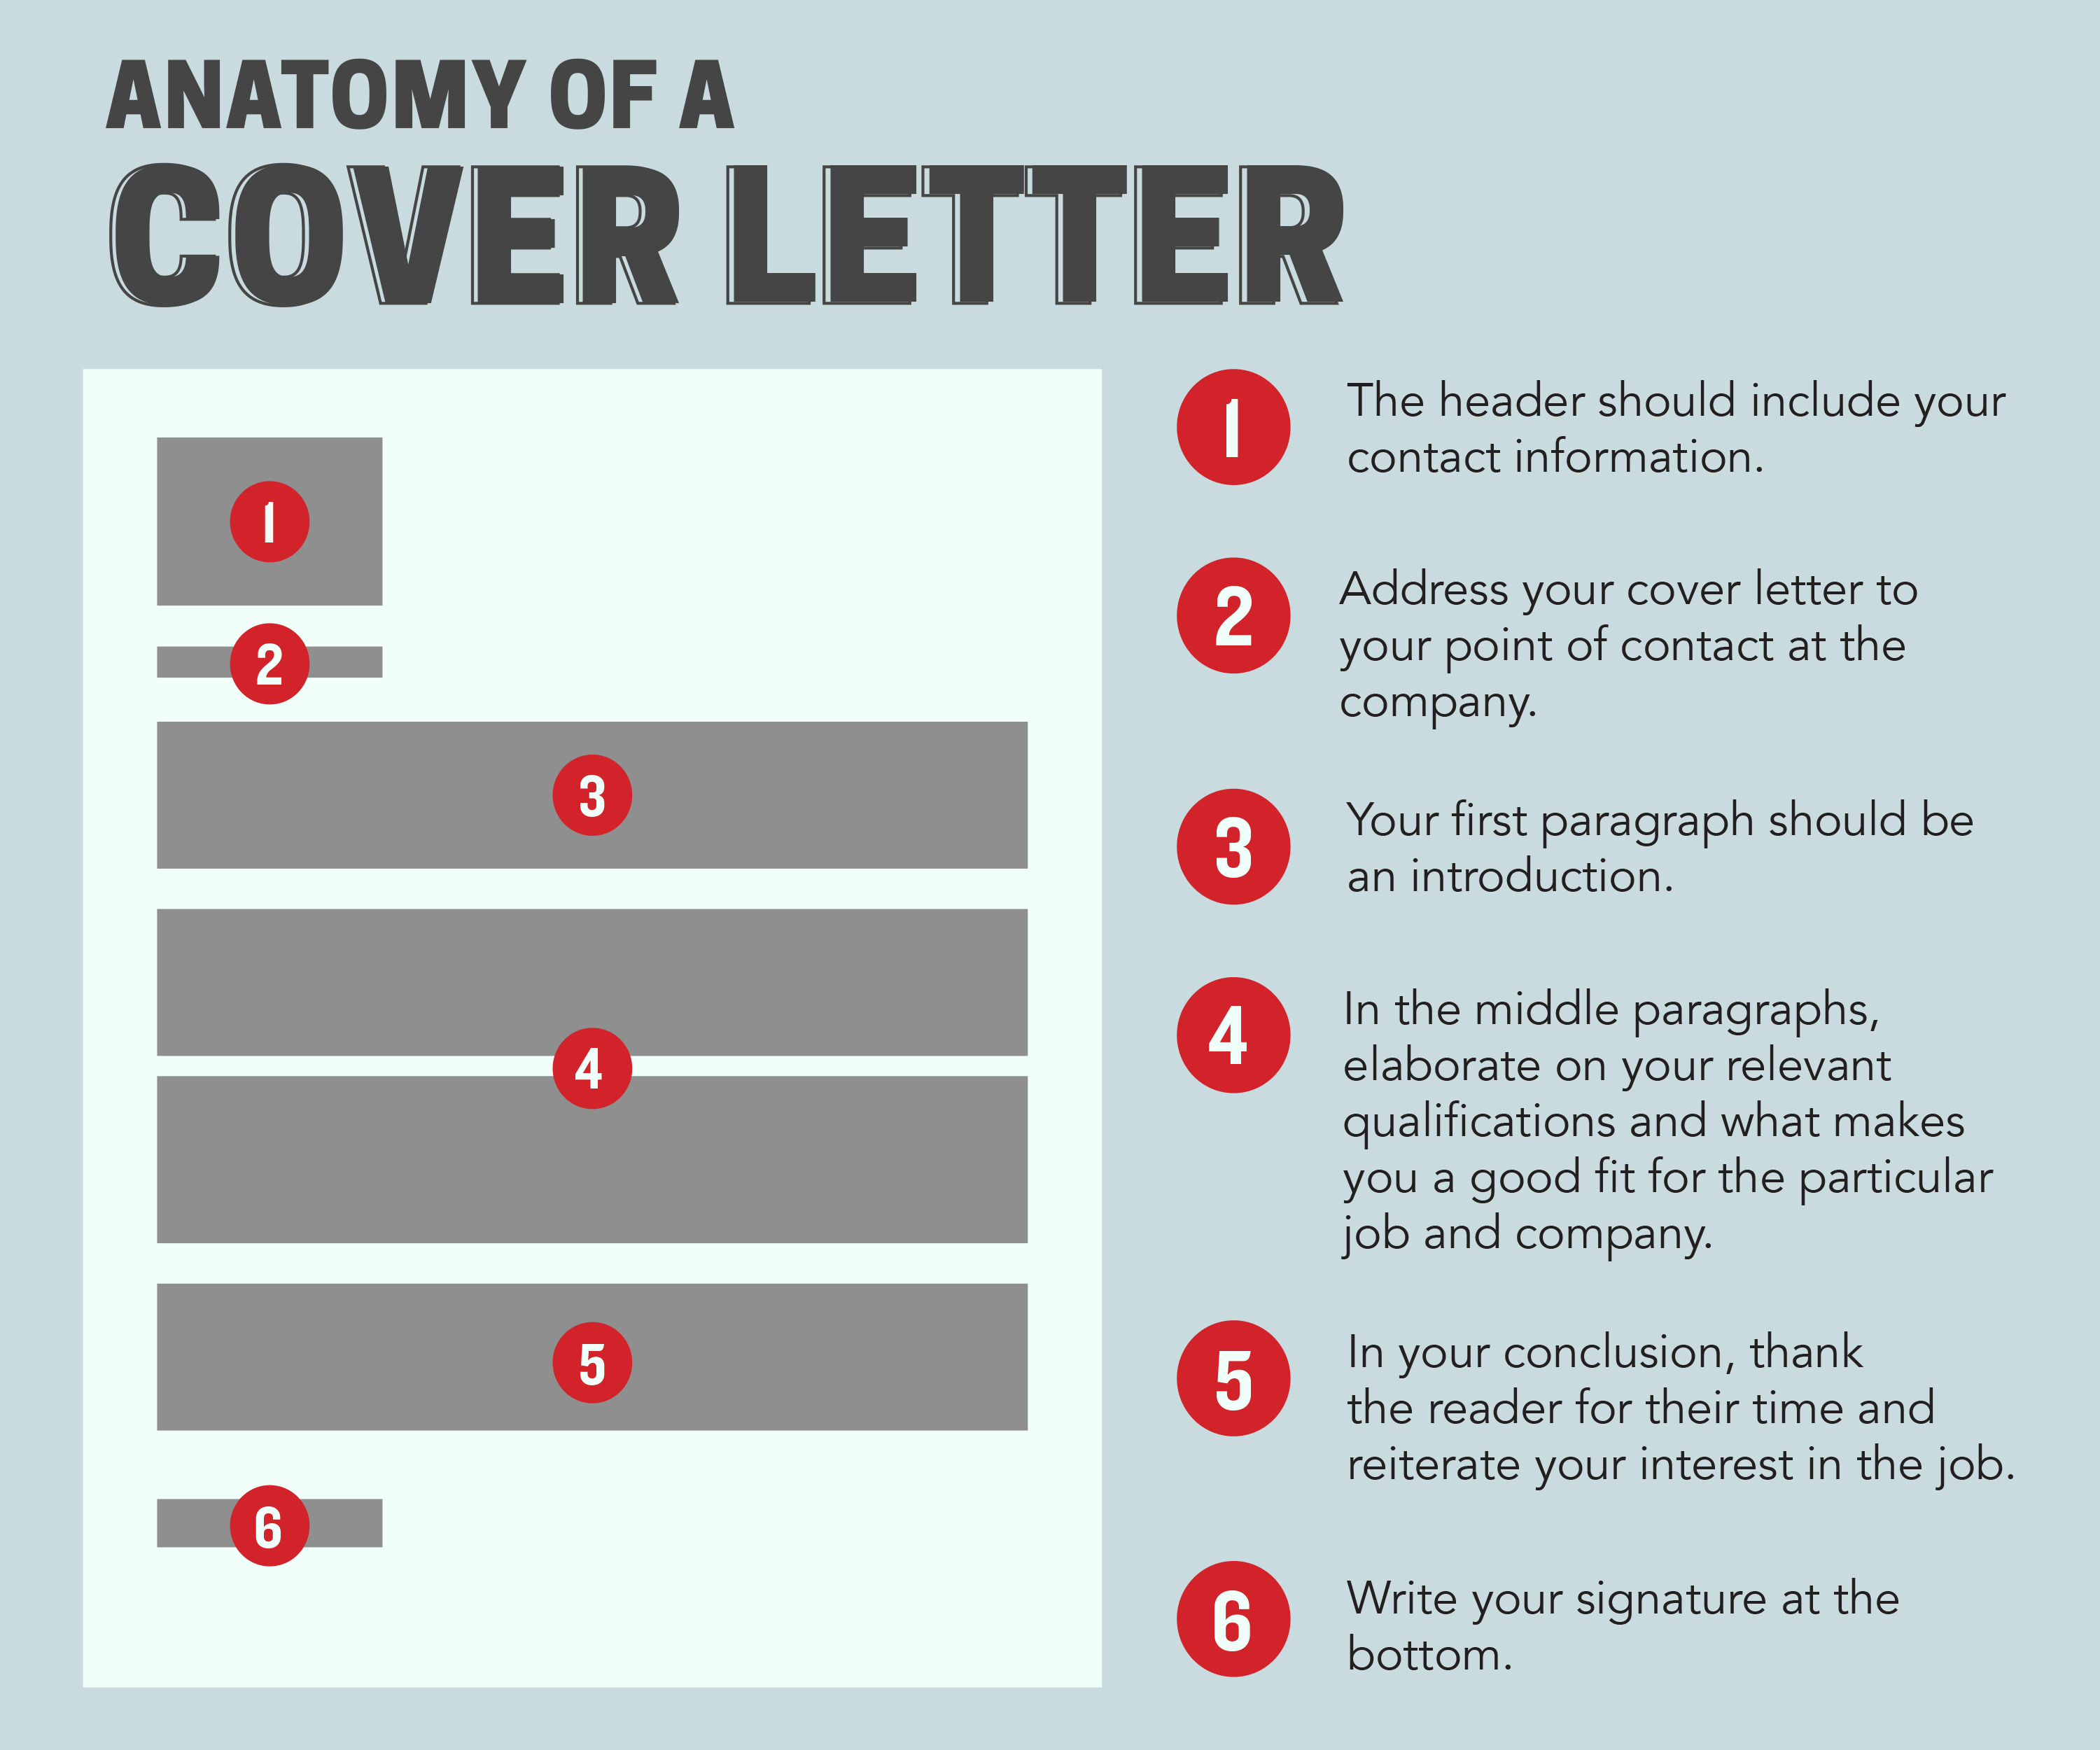 Writing A Cover Letter To A Company Career Chasing How To Write A Cover Letter As A Student